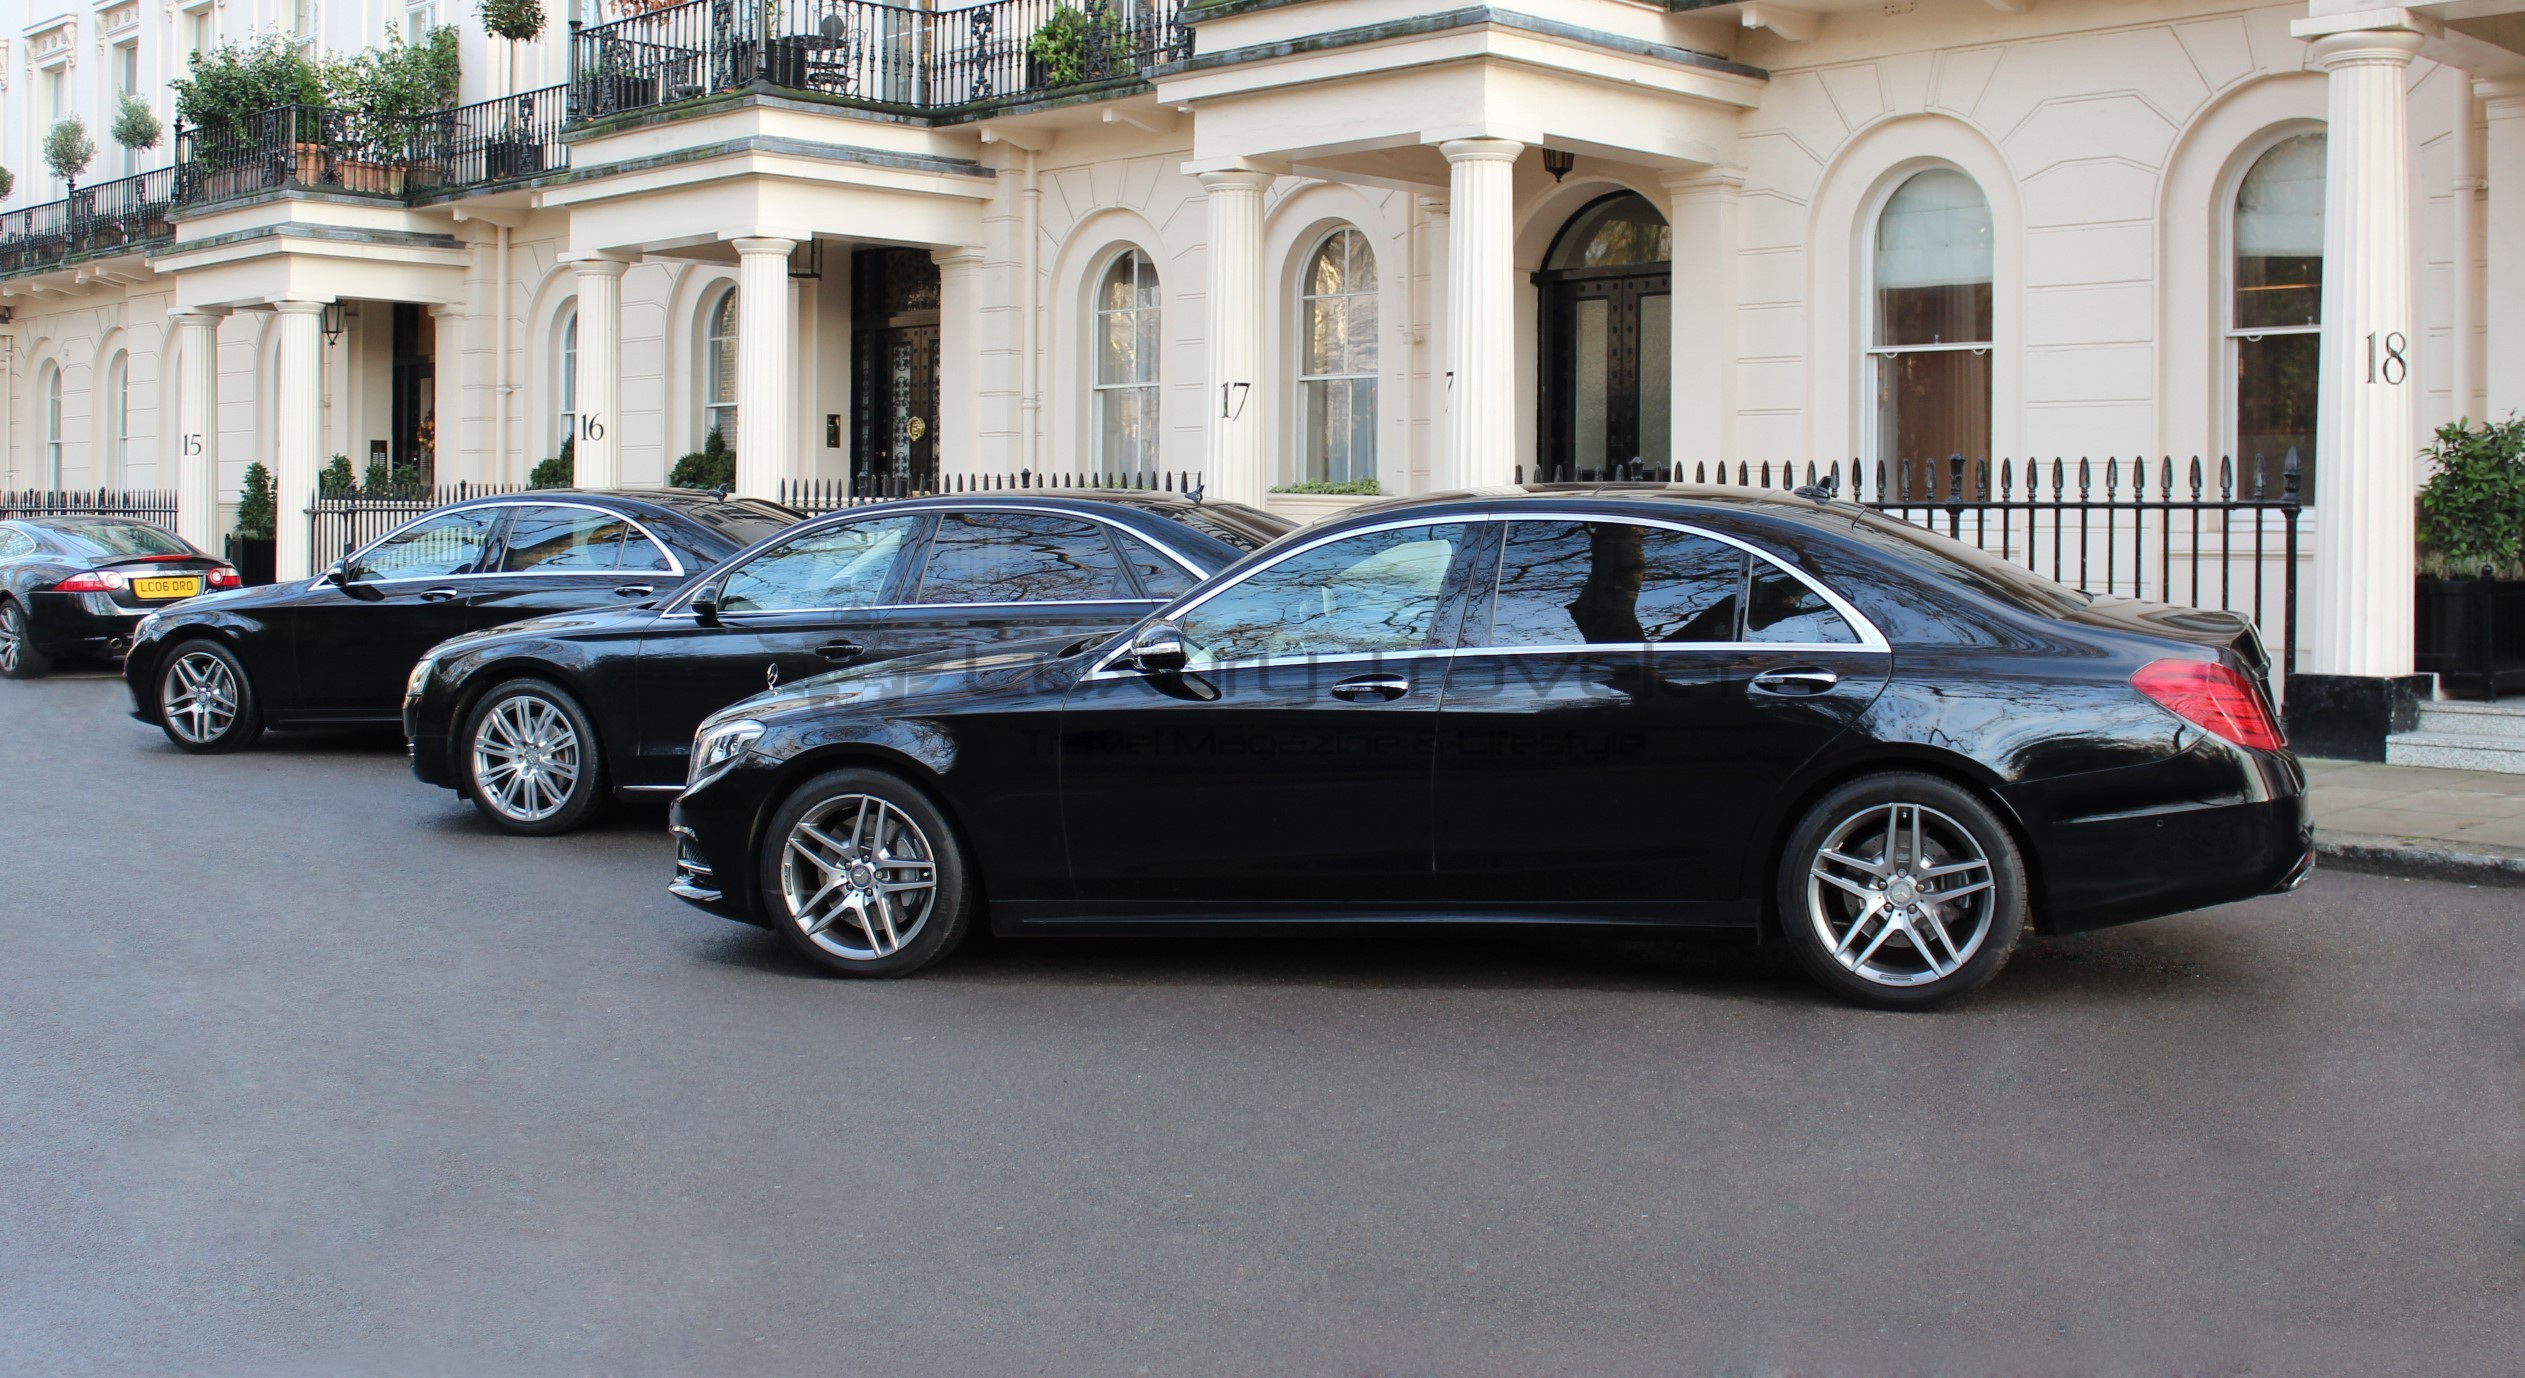 eg_chauffers_luxury_london_fleet